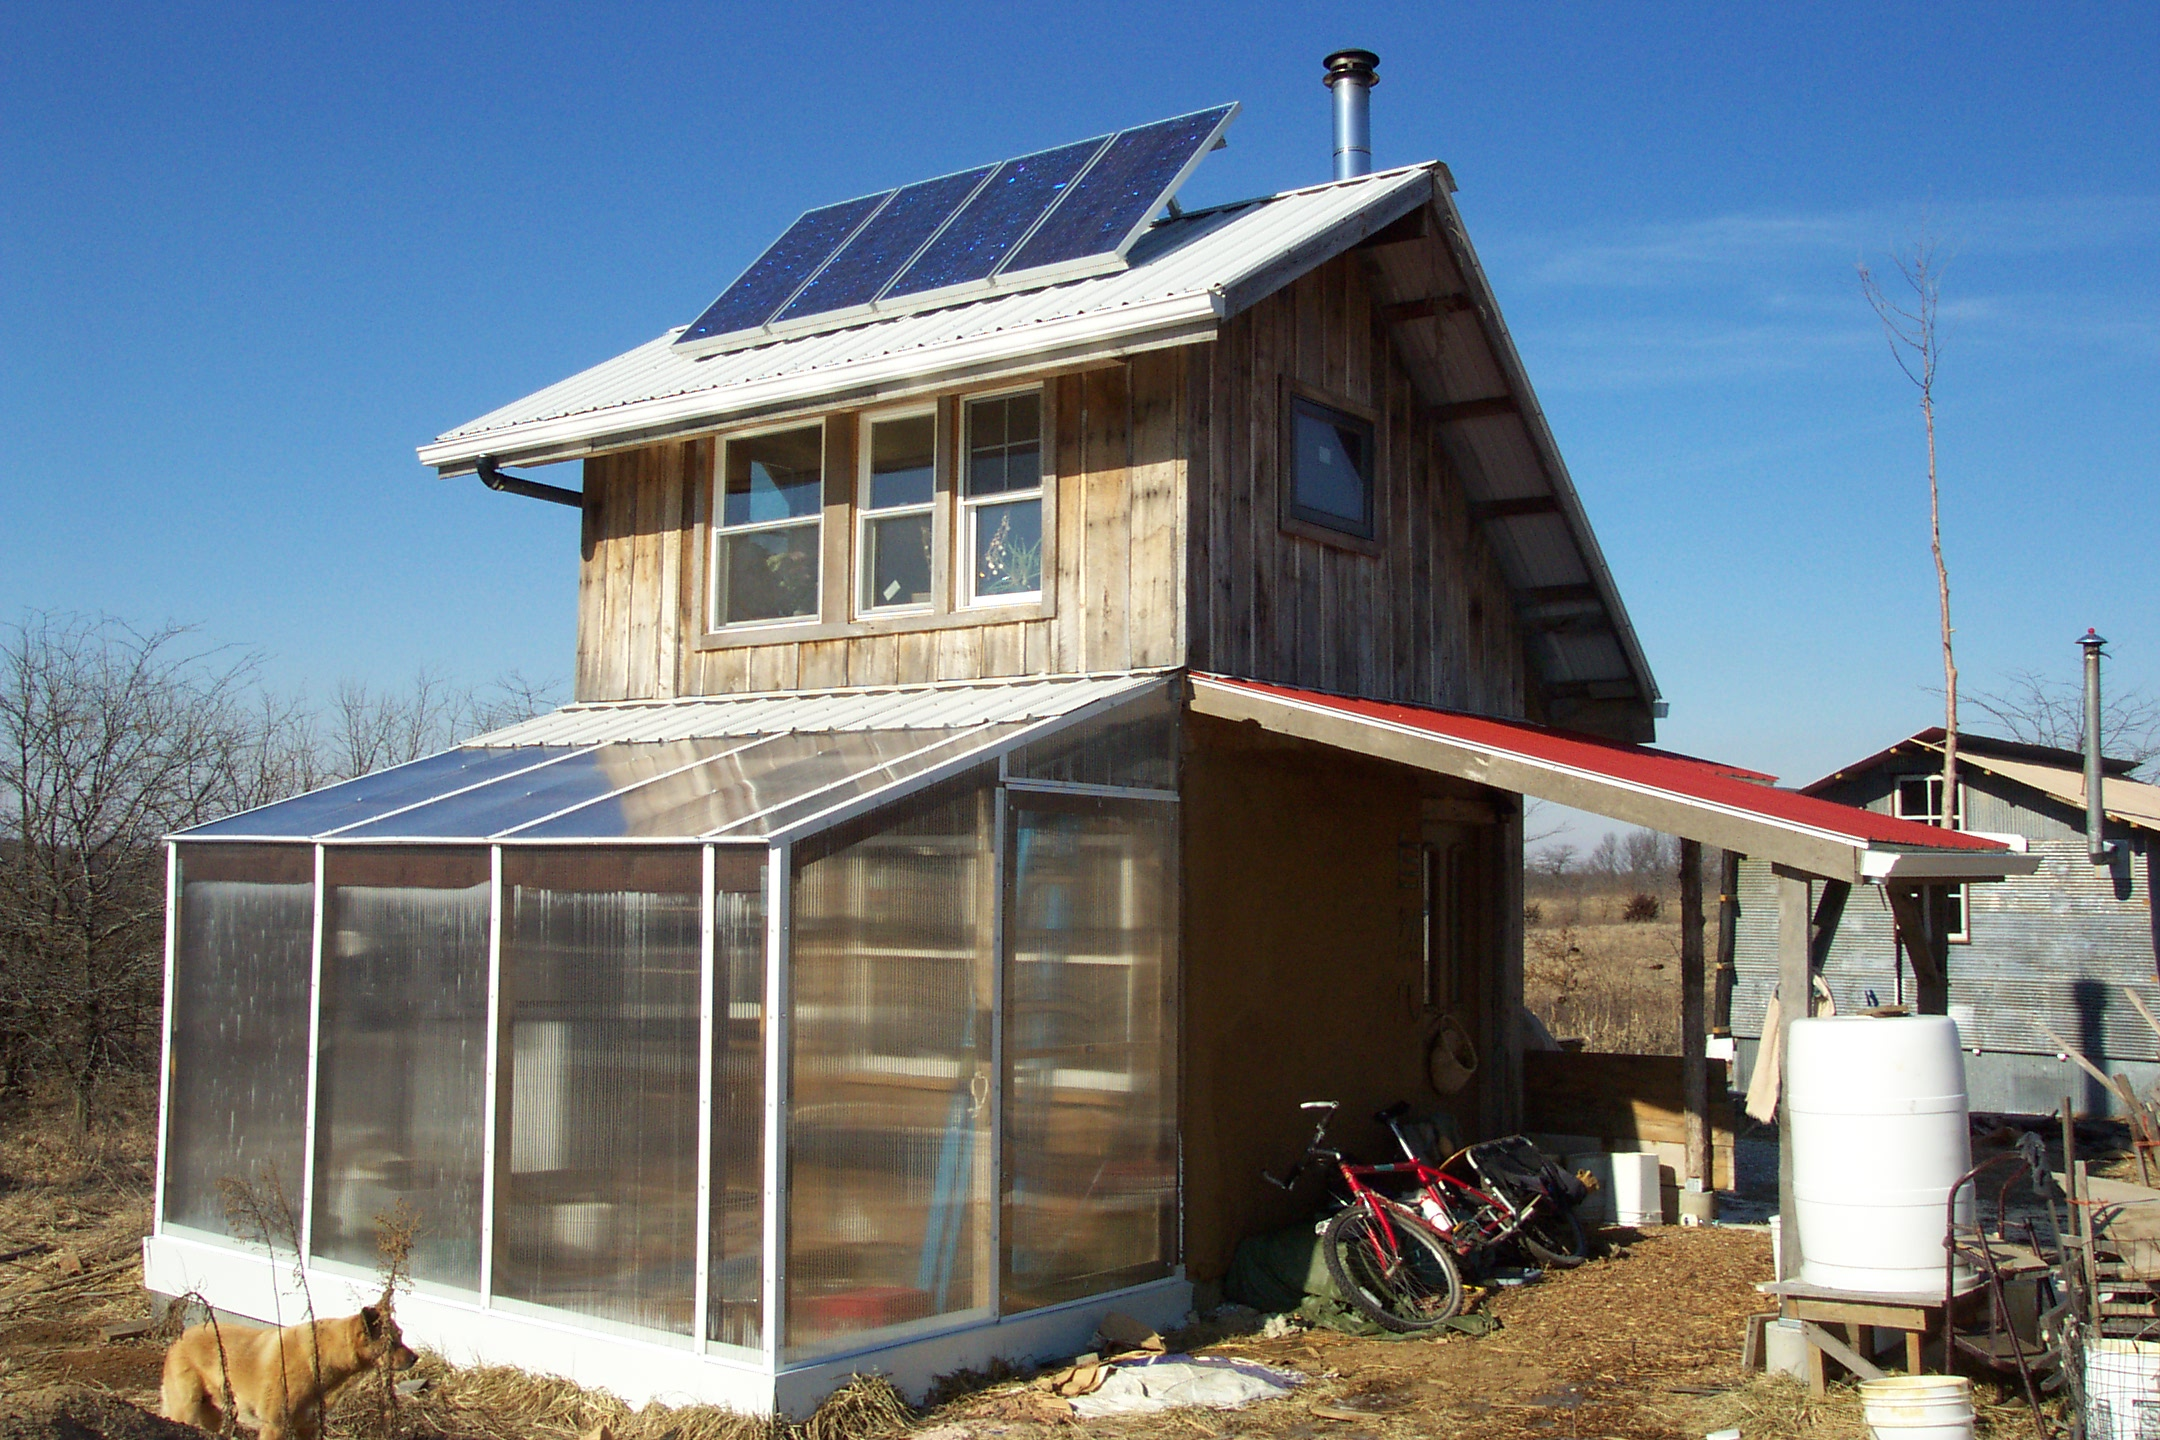 Sustainable home heating dancing rabbit ecovillage for Sustainable house designs